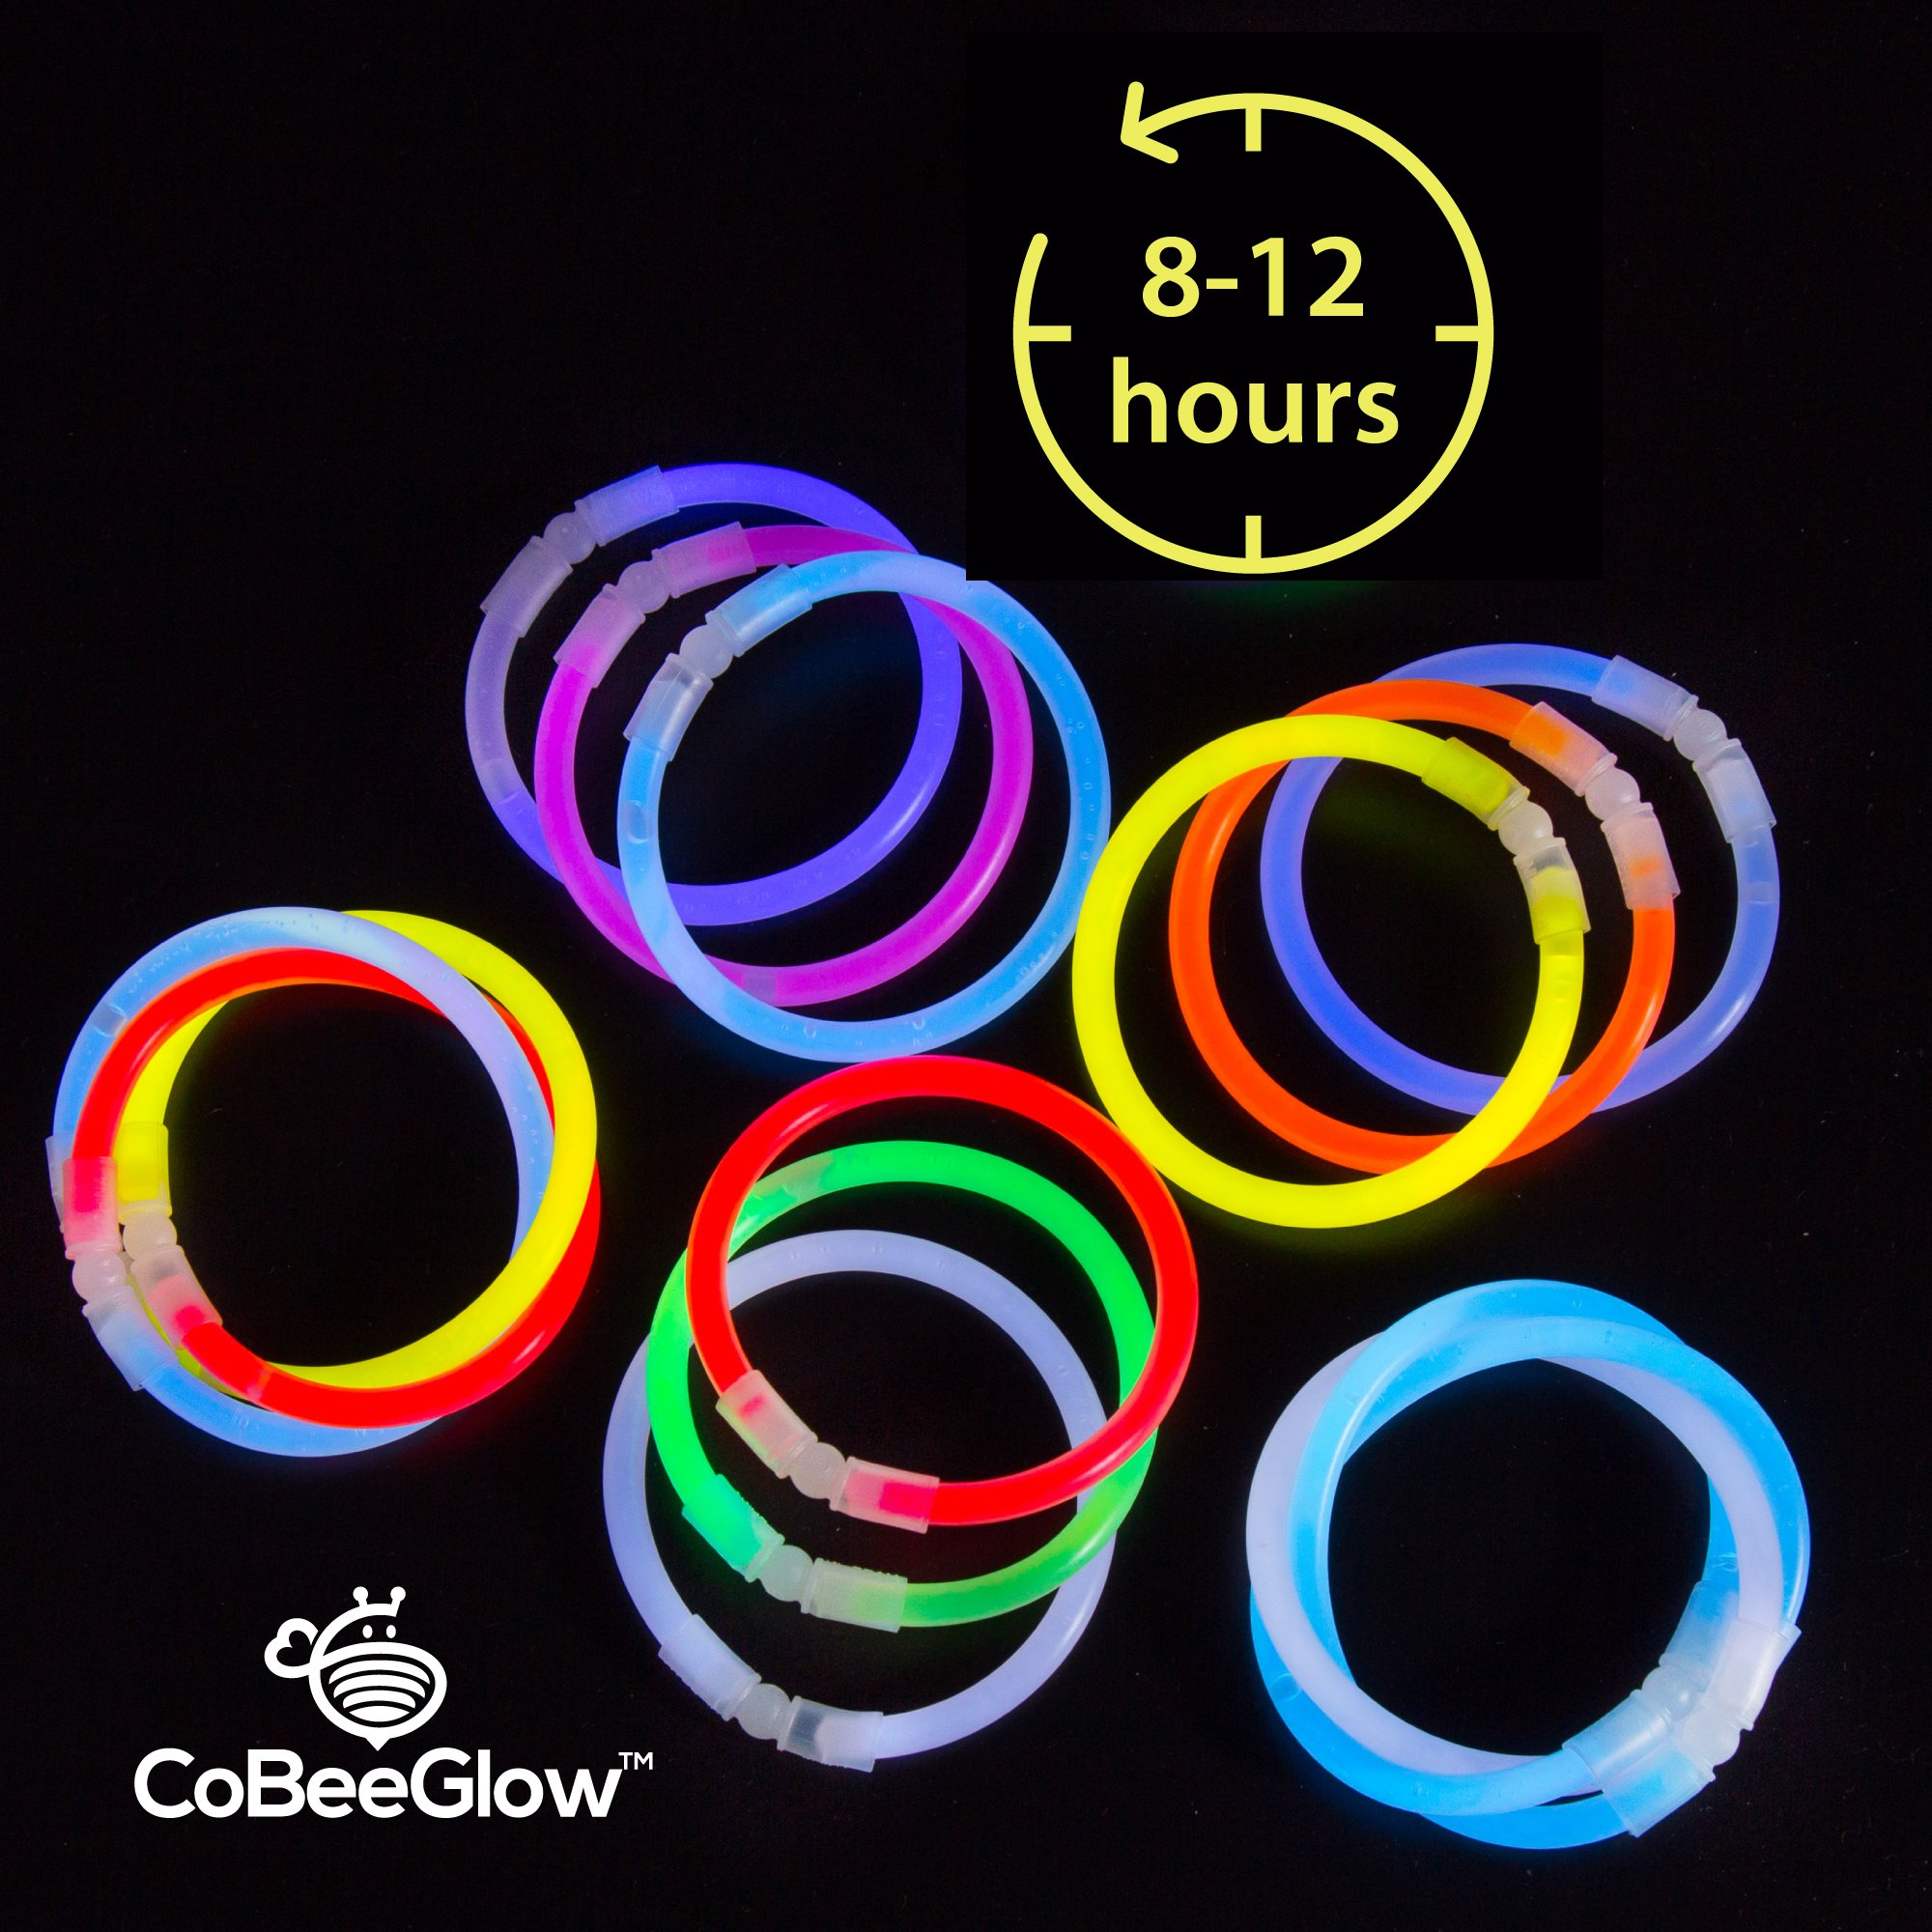 Glow Necklaces Bulk Party Supplies - 100 Glow in the Dark Necklaces - 22 Inch Glow Sticks - Extra Bright Neon Glow Necklace - Strong 6mm Thick - 9 Vibrant Neon Colors - Stuffers for Kids - Mix by CoBeeGlow (Image #6)